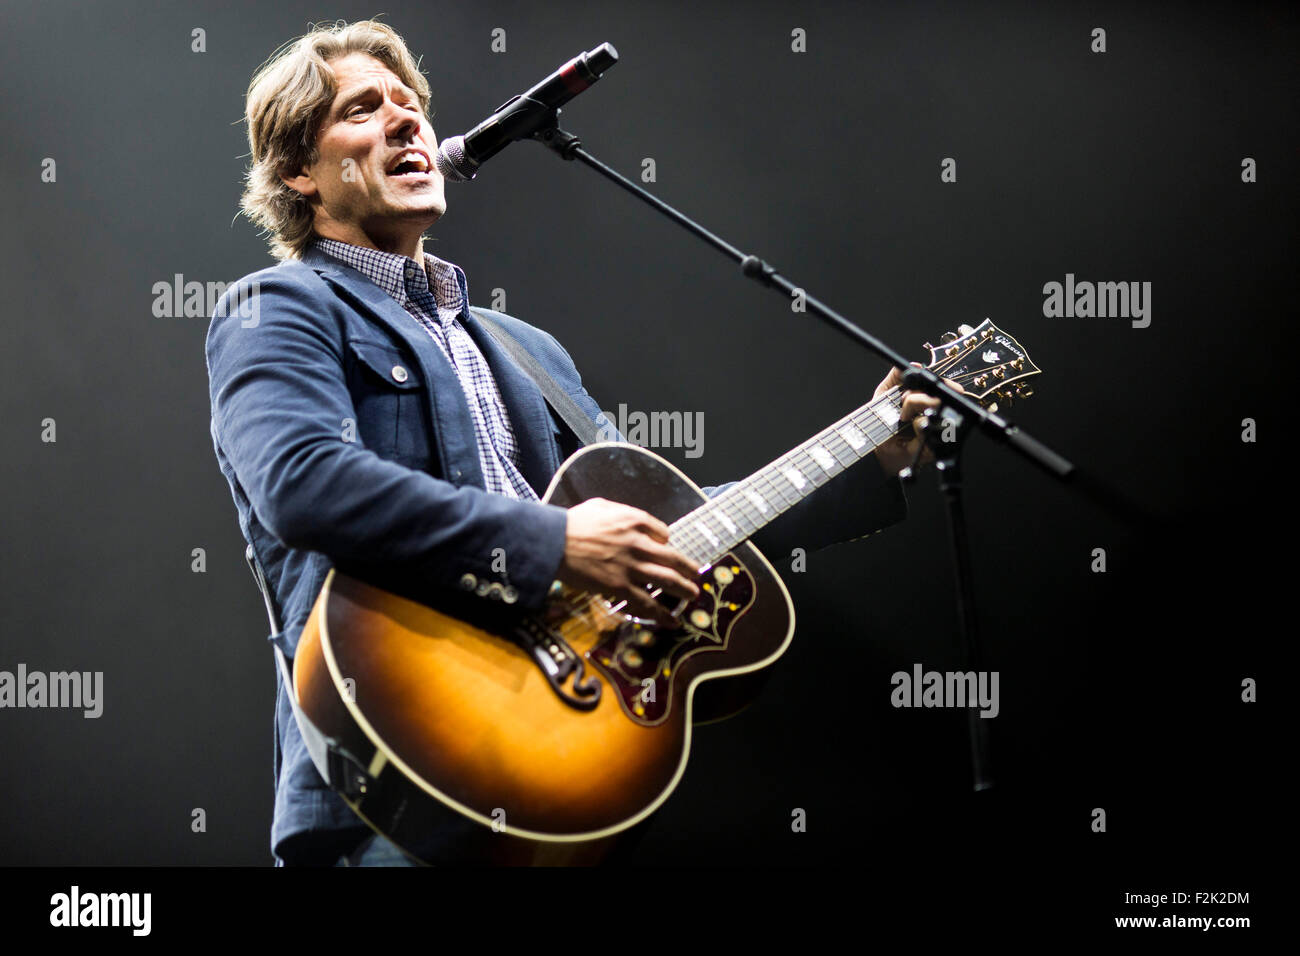 19/9/15 With Love From Liverpool Concert Comedian John Bishop with guitar - Stock Image